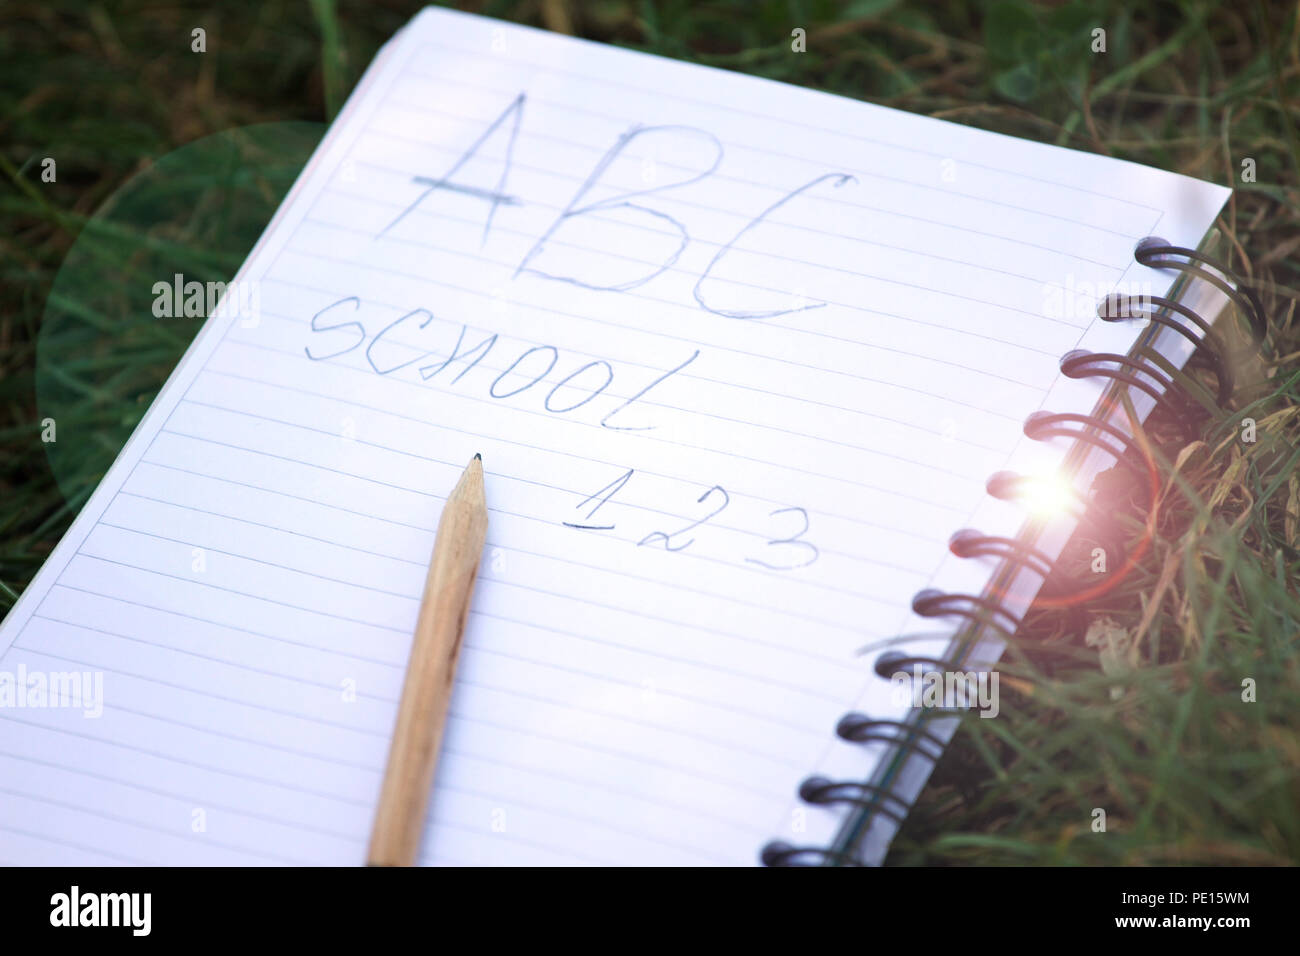 Back to school concept. Education and nature. A B C , school and 1 2 3 write on a notebook. Notebook and a pencil. Copy space for notes. Time for scho Stock Photo